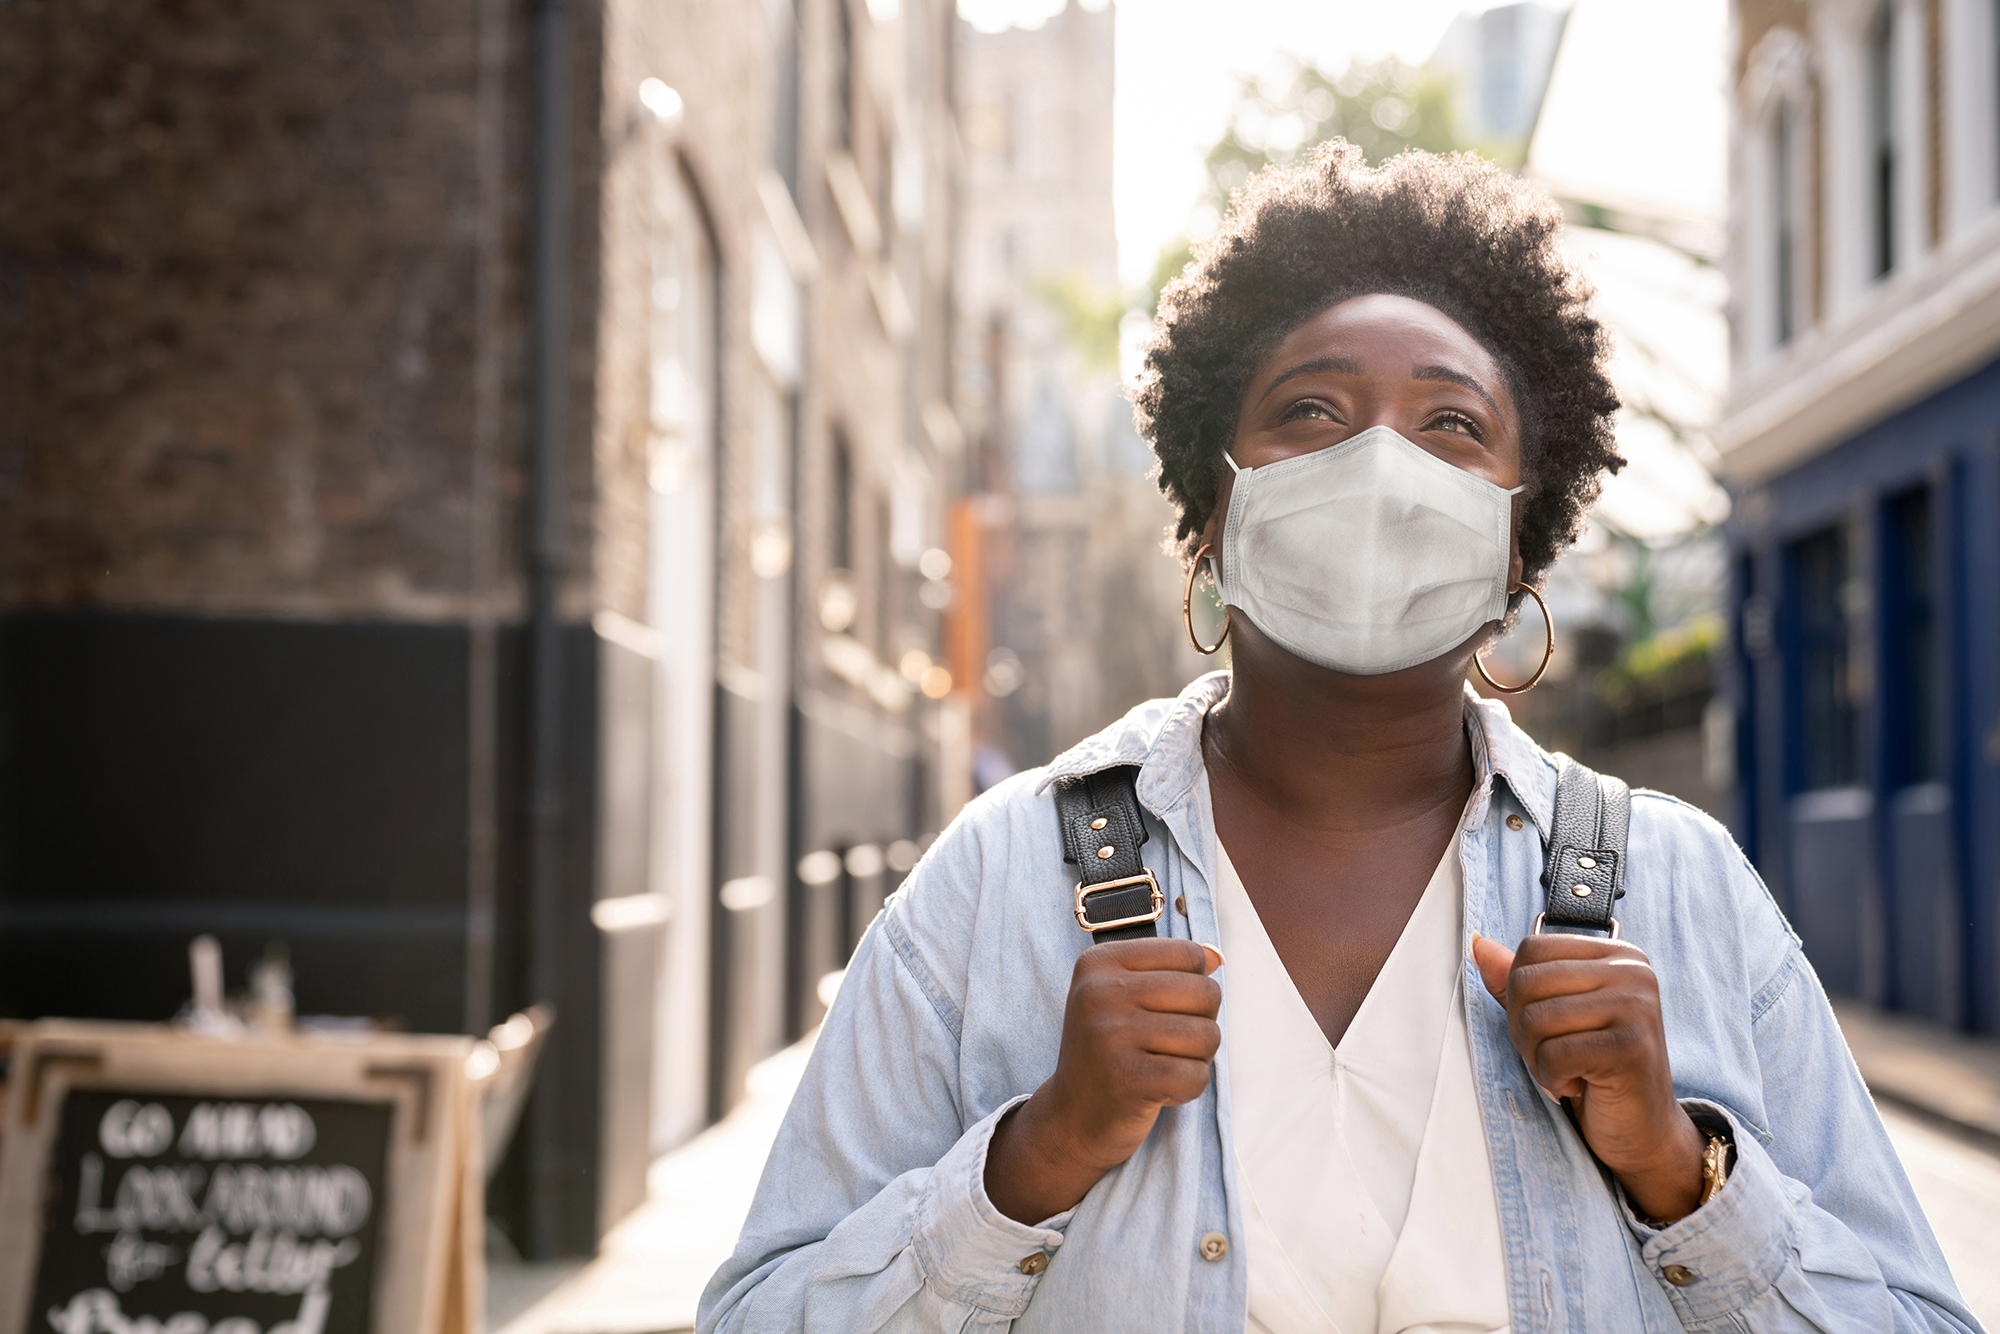 Thoughtful black woman wearing a facemask on the street